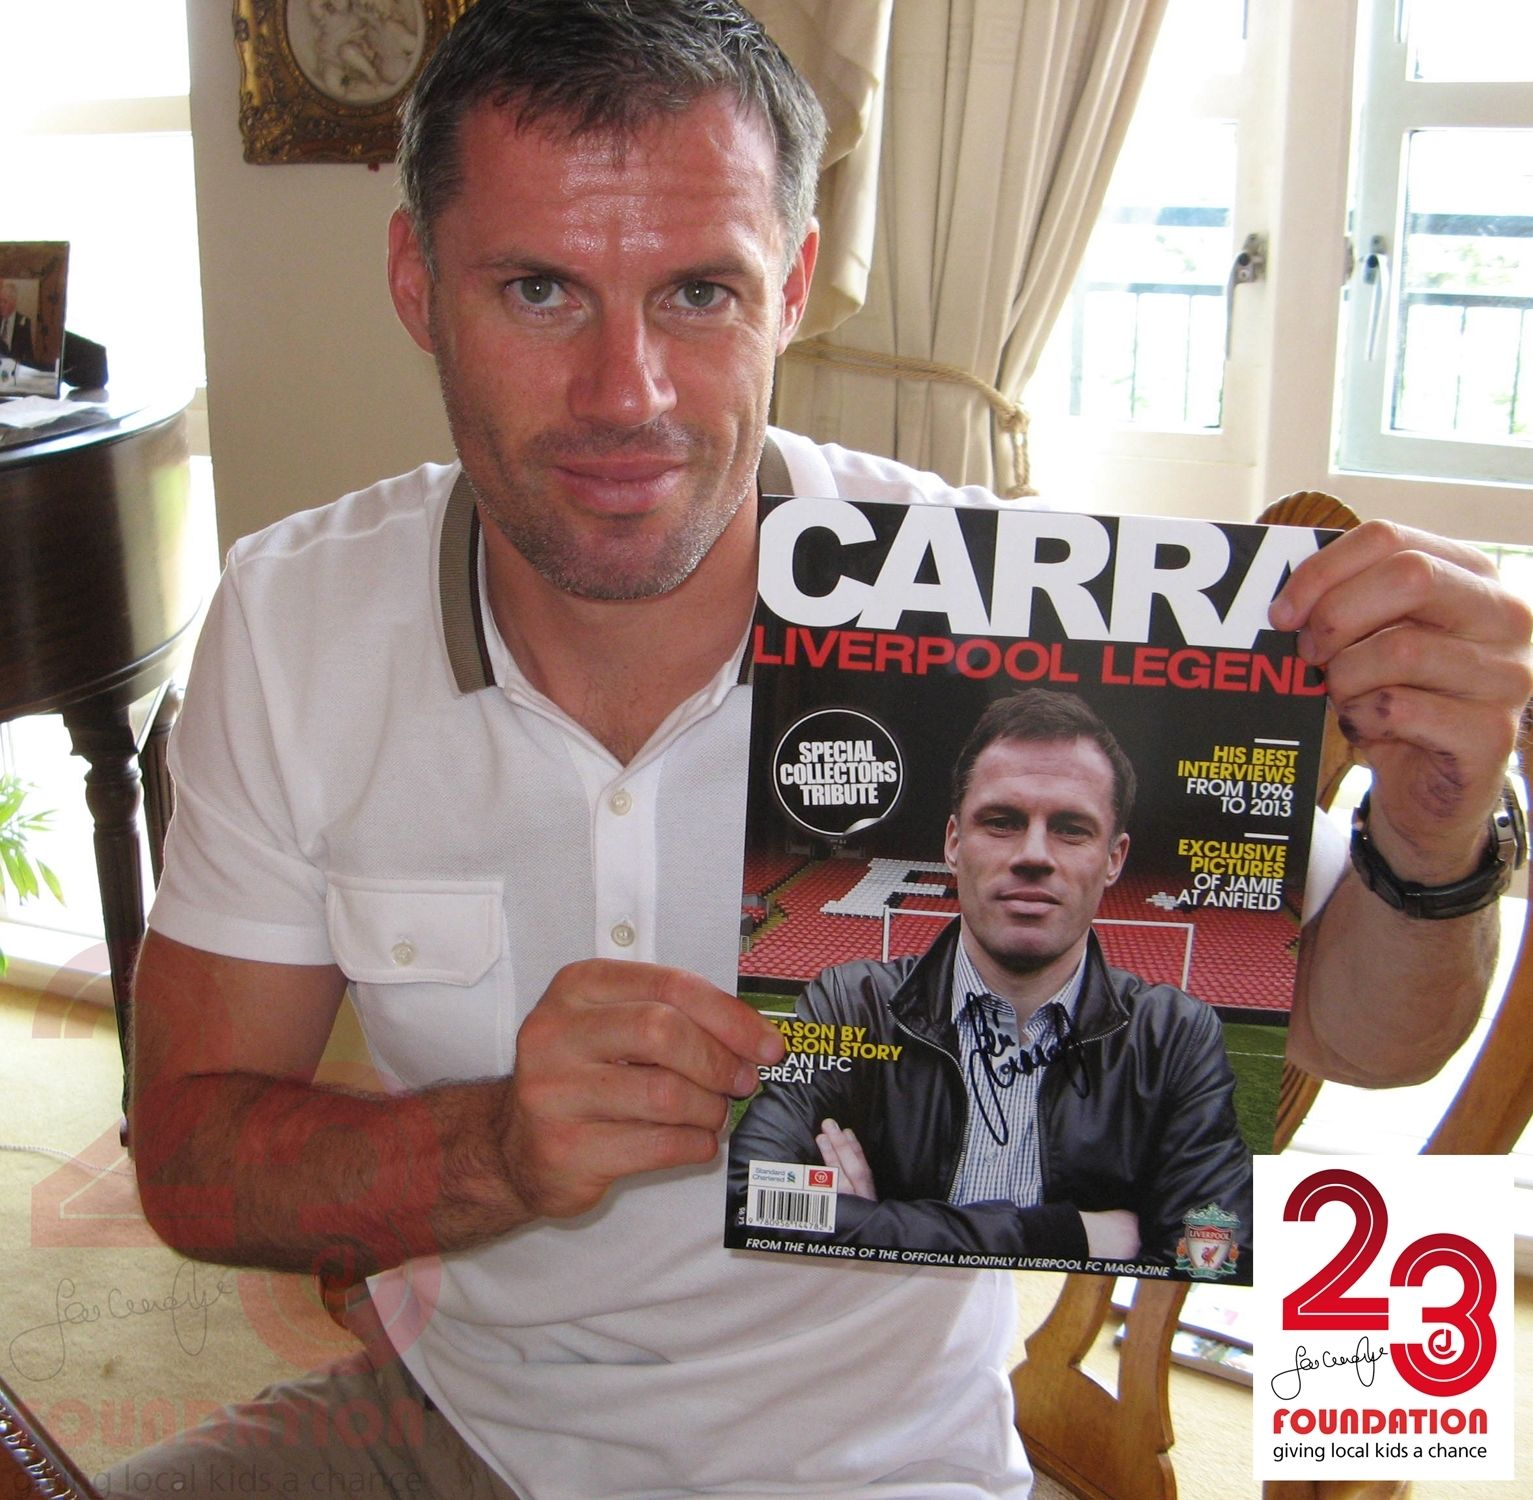 Carragher Signed 'Special Collectors Tribute' …